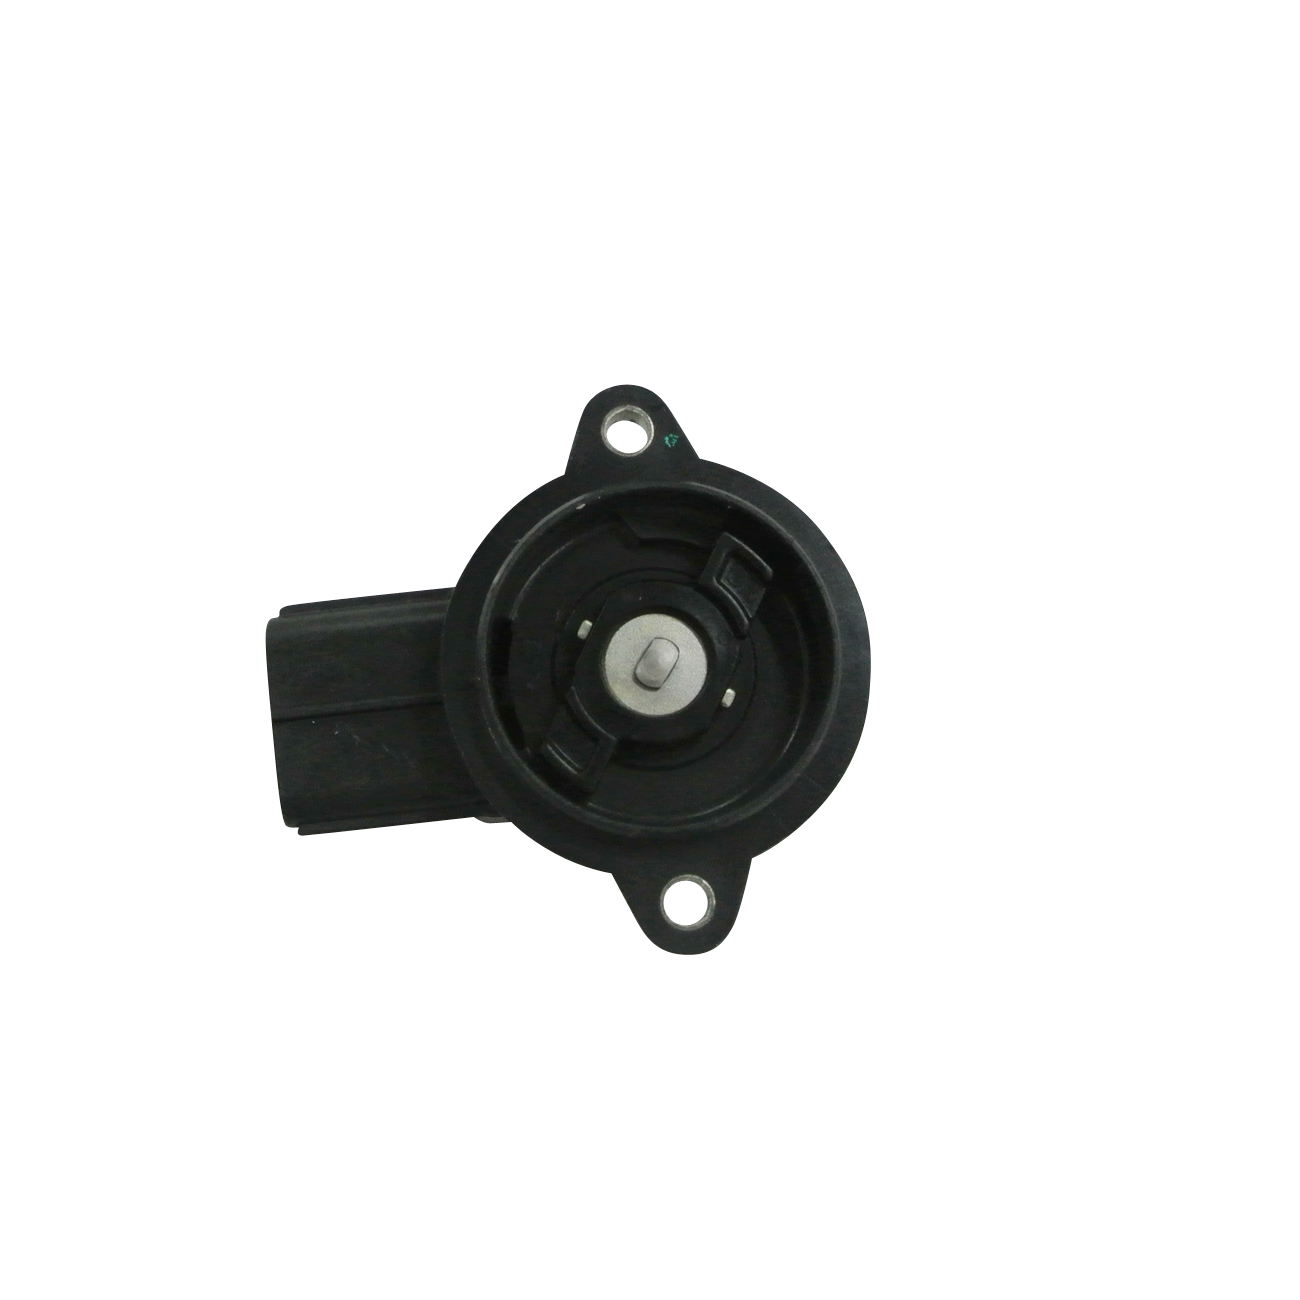 Throttle Position Sensor Toyota Hilux: 89457 52010 89457 52020 Throttle Position Sensor TPS For